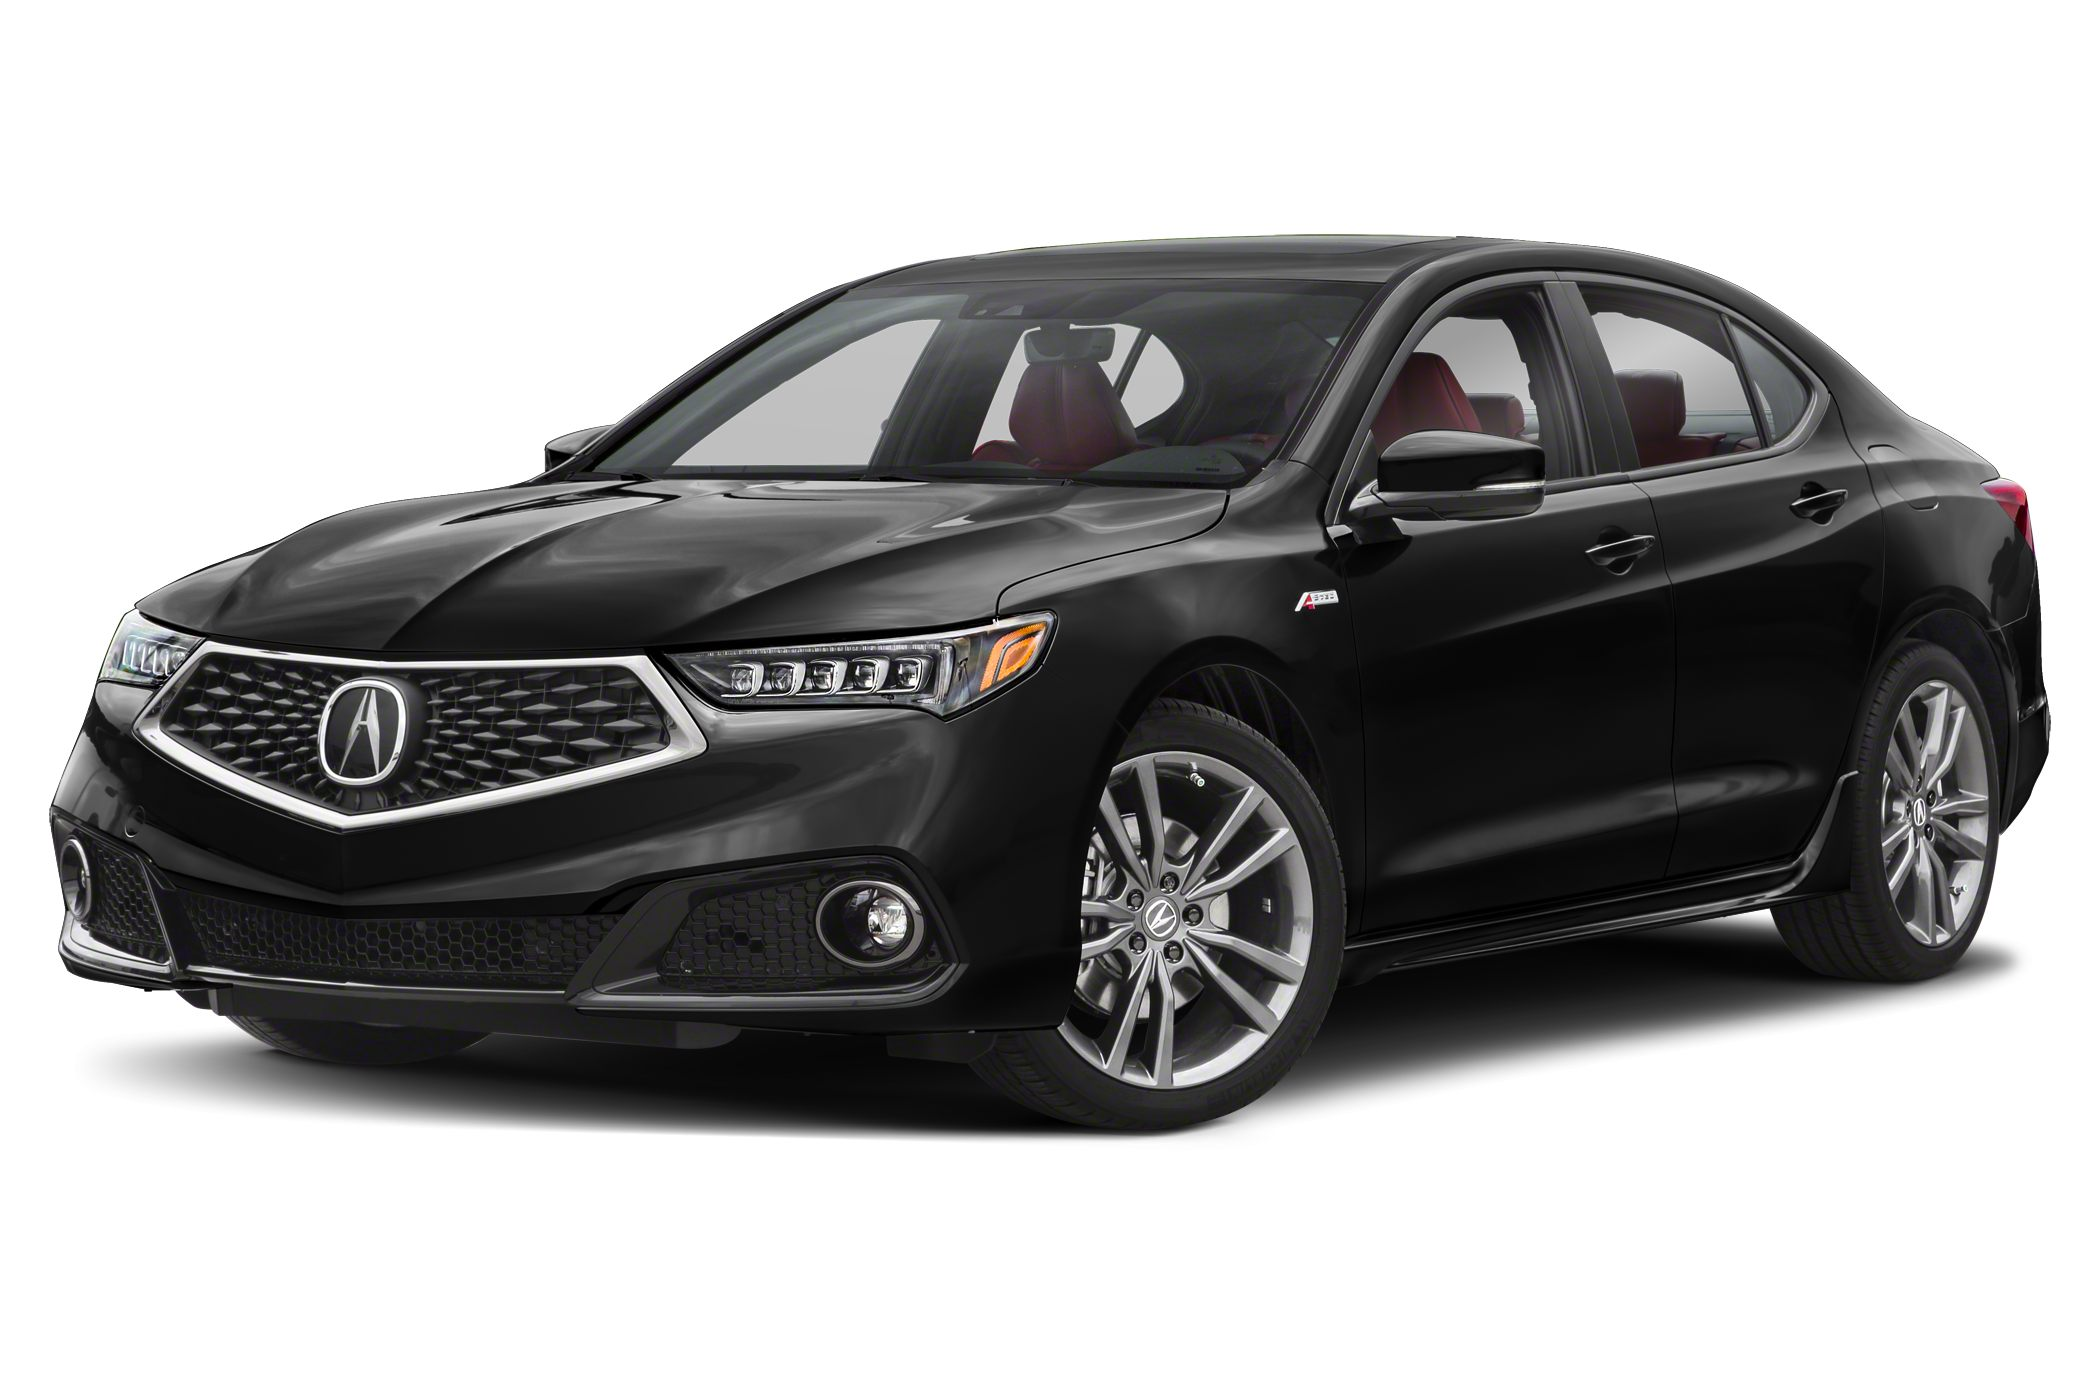 2020 Acura TLX 3.5L A-Spec Pkg w/Red Leather 4dr Front-wheel Drive Sedan